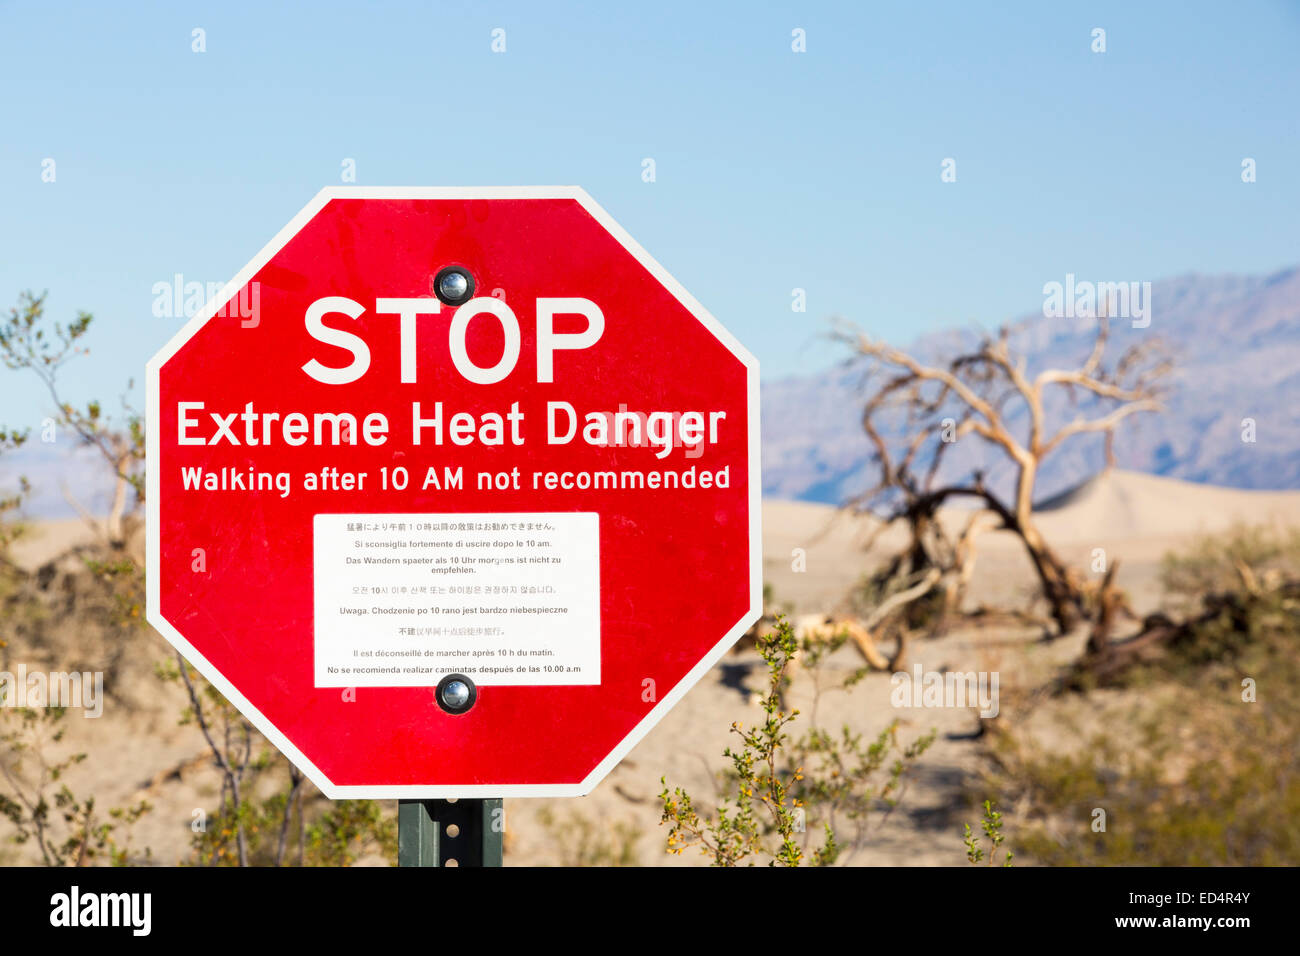 Stop Extreme Heat Danger Stock Photos & Stop Extreme Heat Danger